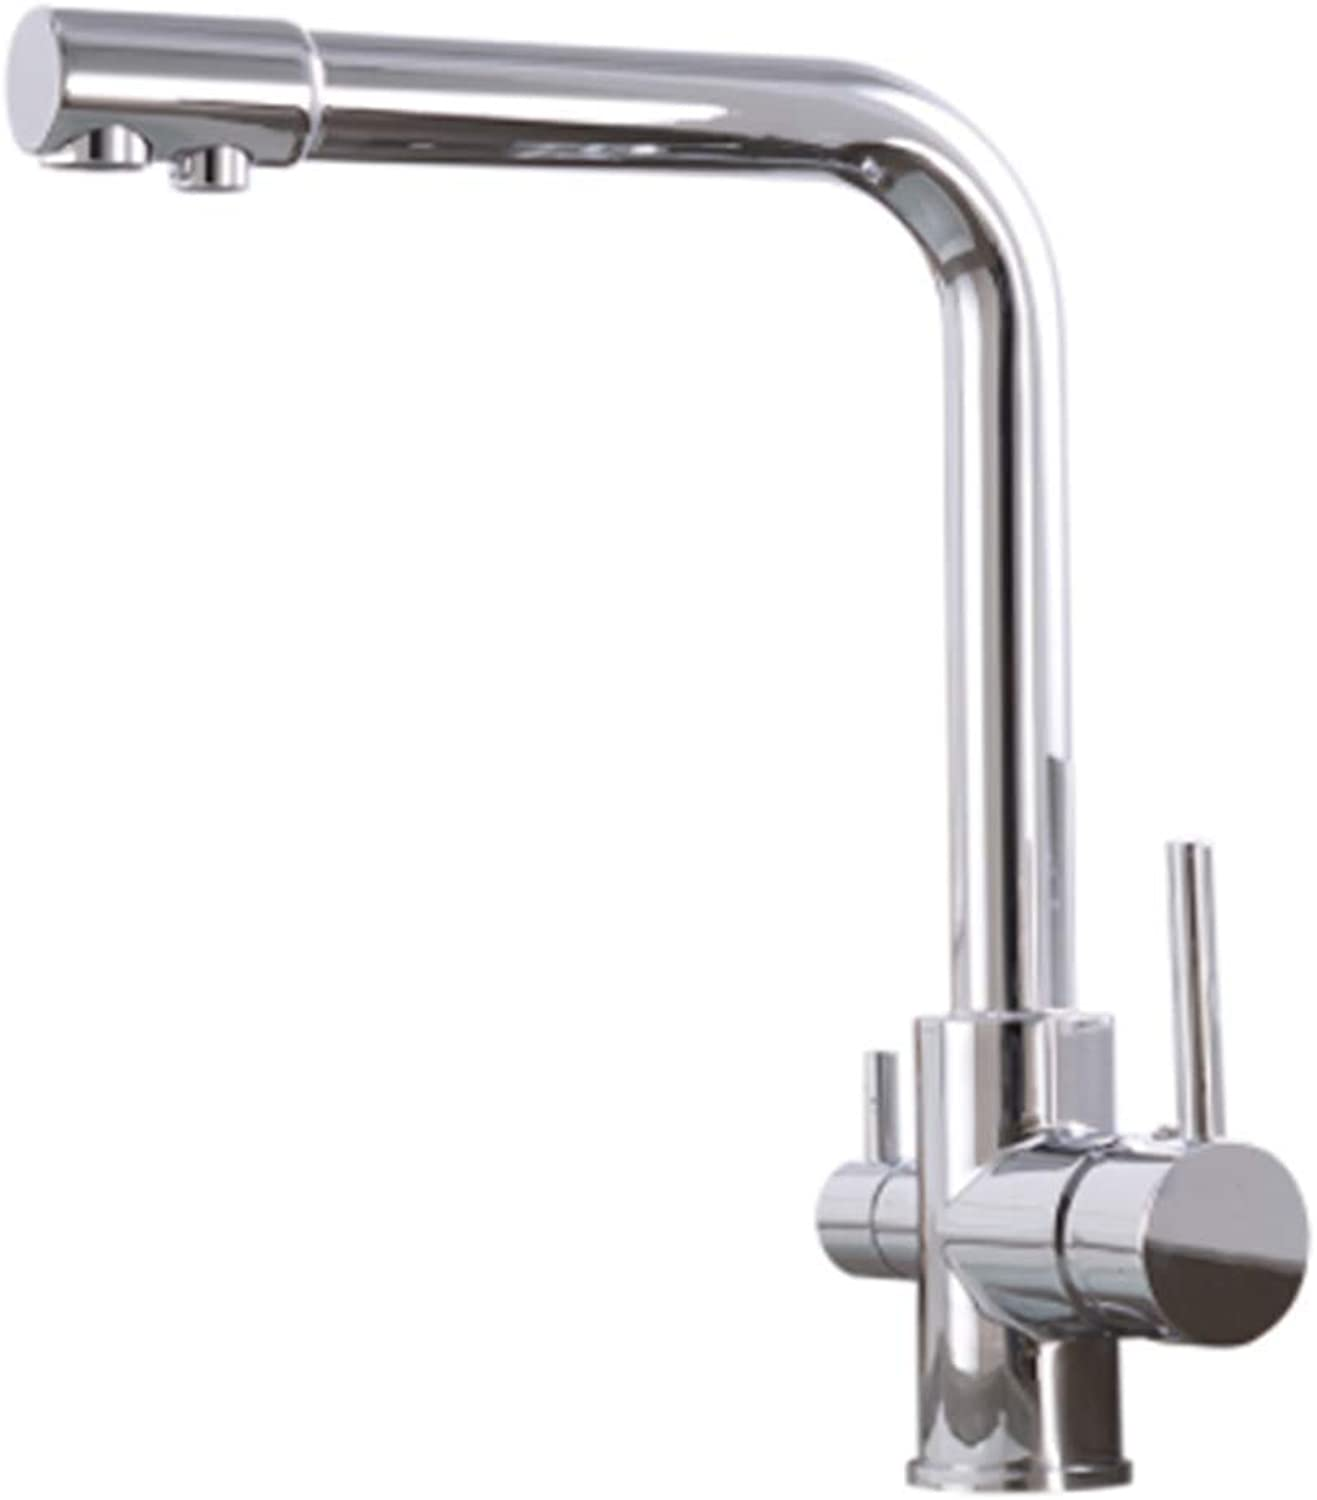 Taps Kitchen Basin Bathroom Washroomkitchen Faucets Deck Mounted Mixer Tap 360 redation with Water Purification Features Mixer Crane for Kitchen